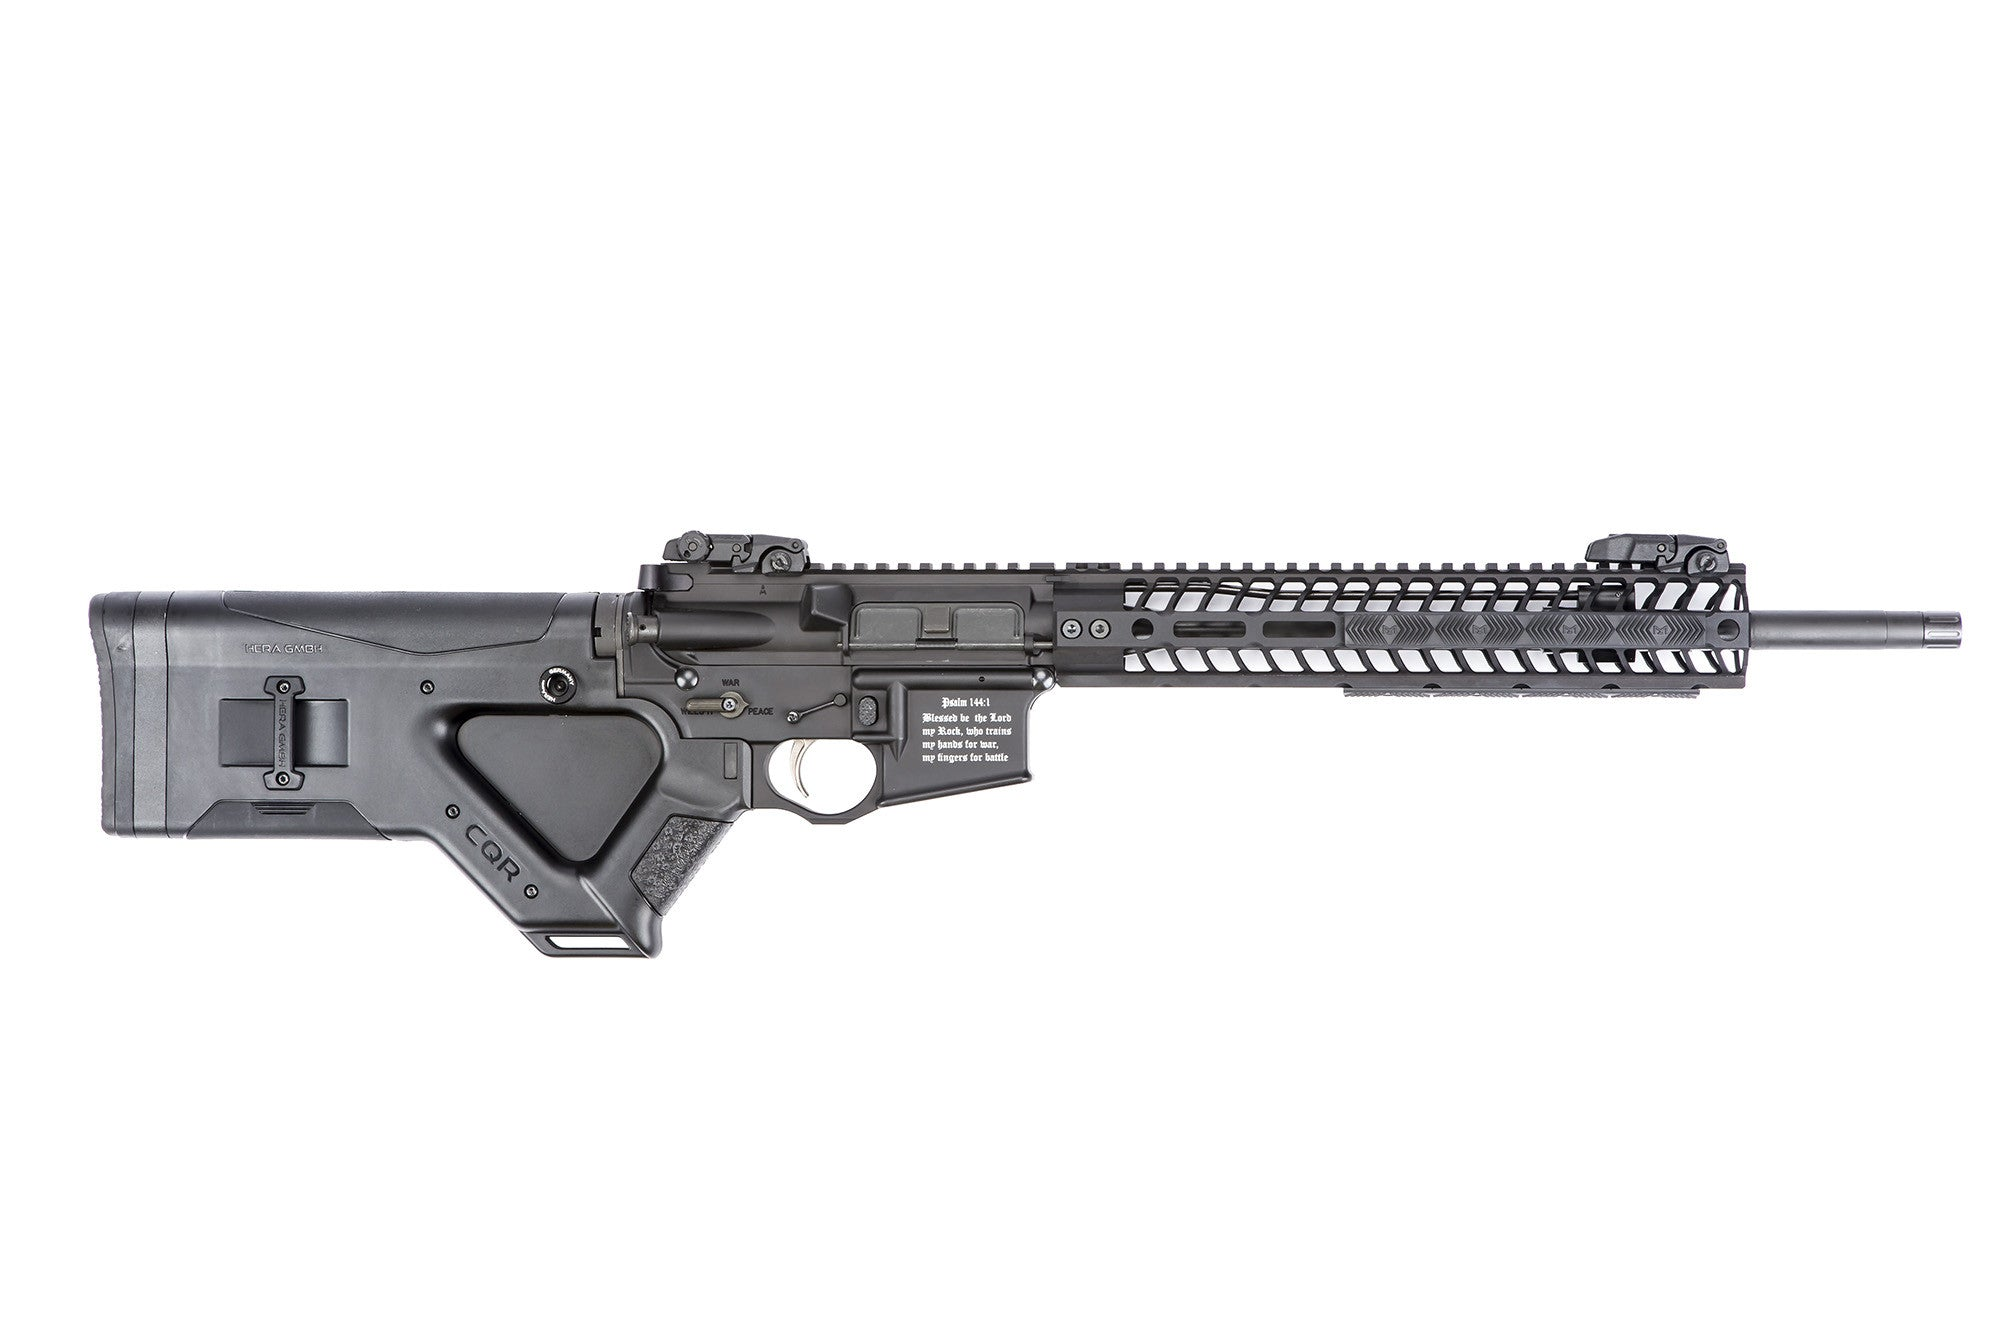 "Crusader 16"" CA Featureless"